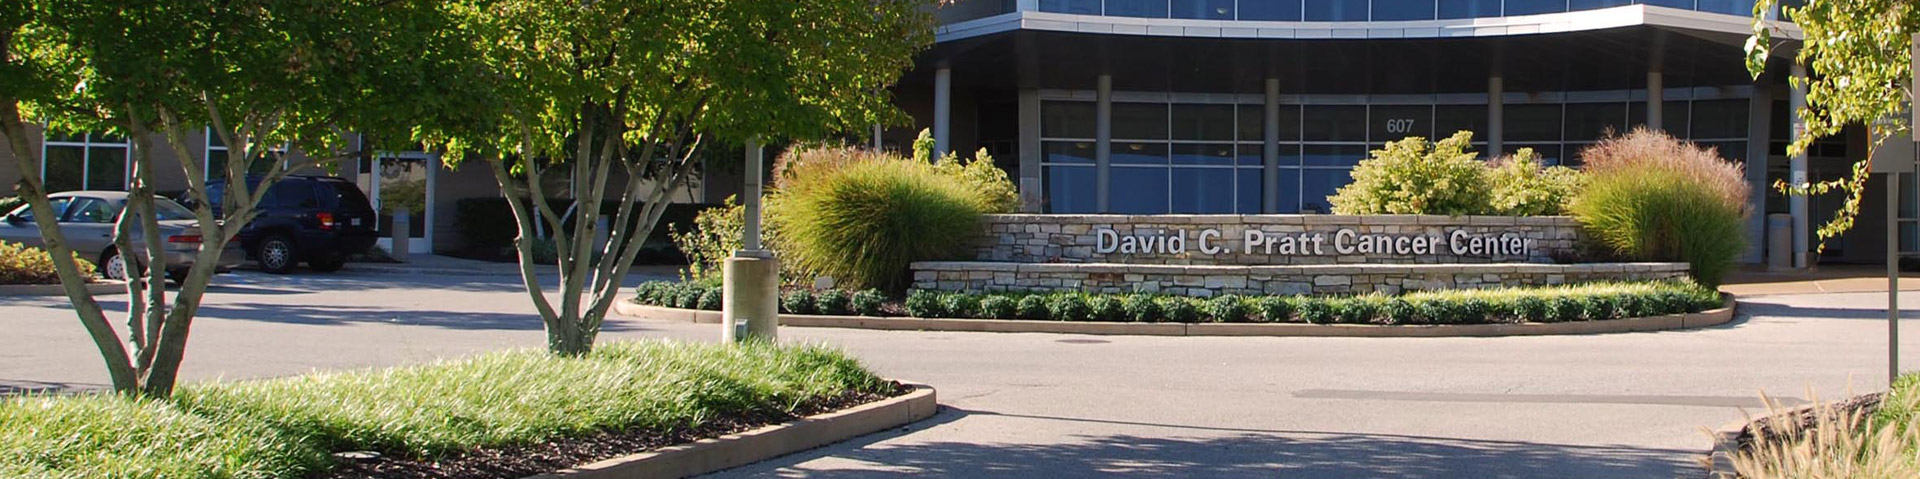 WEB_Hero_Location_David-C-Pratt-Cancer-Center